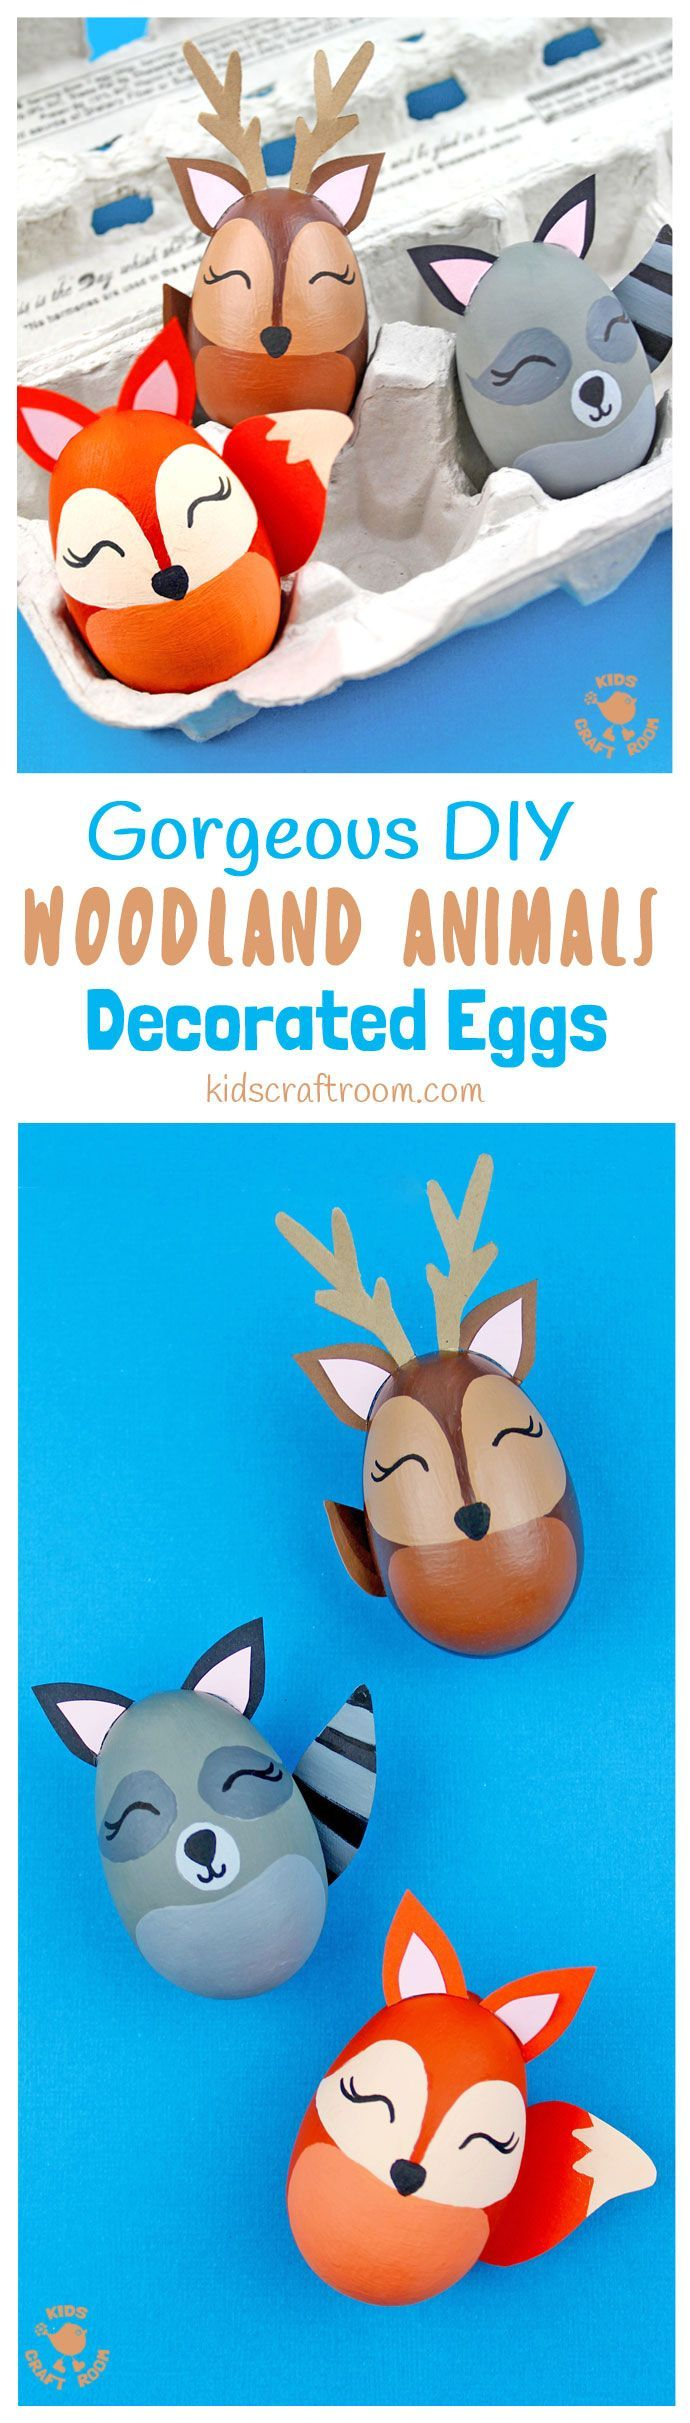 WOODLAND ANIMAL DECORATED EGGS - If you're looking for some special Easter egg decorating ideas then these Gorgeous Woodland Animal Easter Eggs are perfect. This set of Easter egg animal designs look amazing and are surprisingly easy to make. There's a stunning egg fox, raccoon and deer, all so adorable! #Easter #eastereggs #woodlandanimals #eggs #eastercrafts #easterdecorations #paintedeggs #animalcrafts #kidscrafts #easterideas #easteractivities #forestanimals #eggdecorating via…